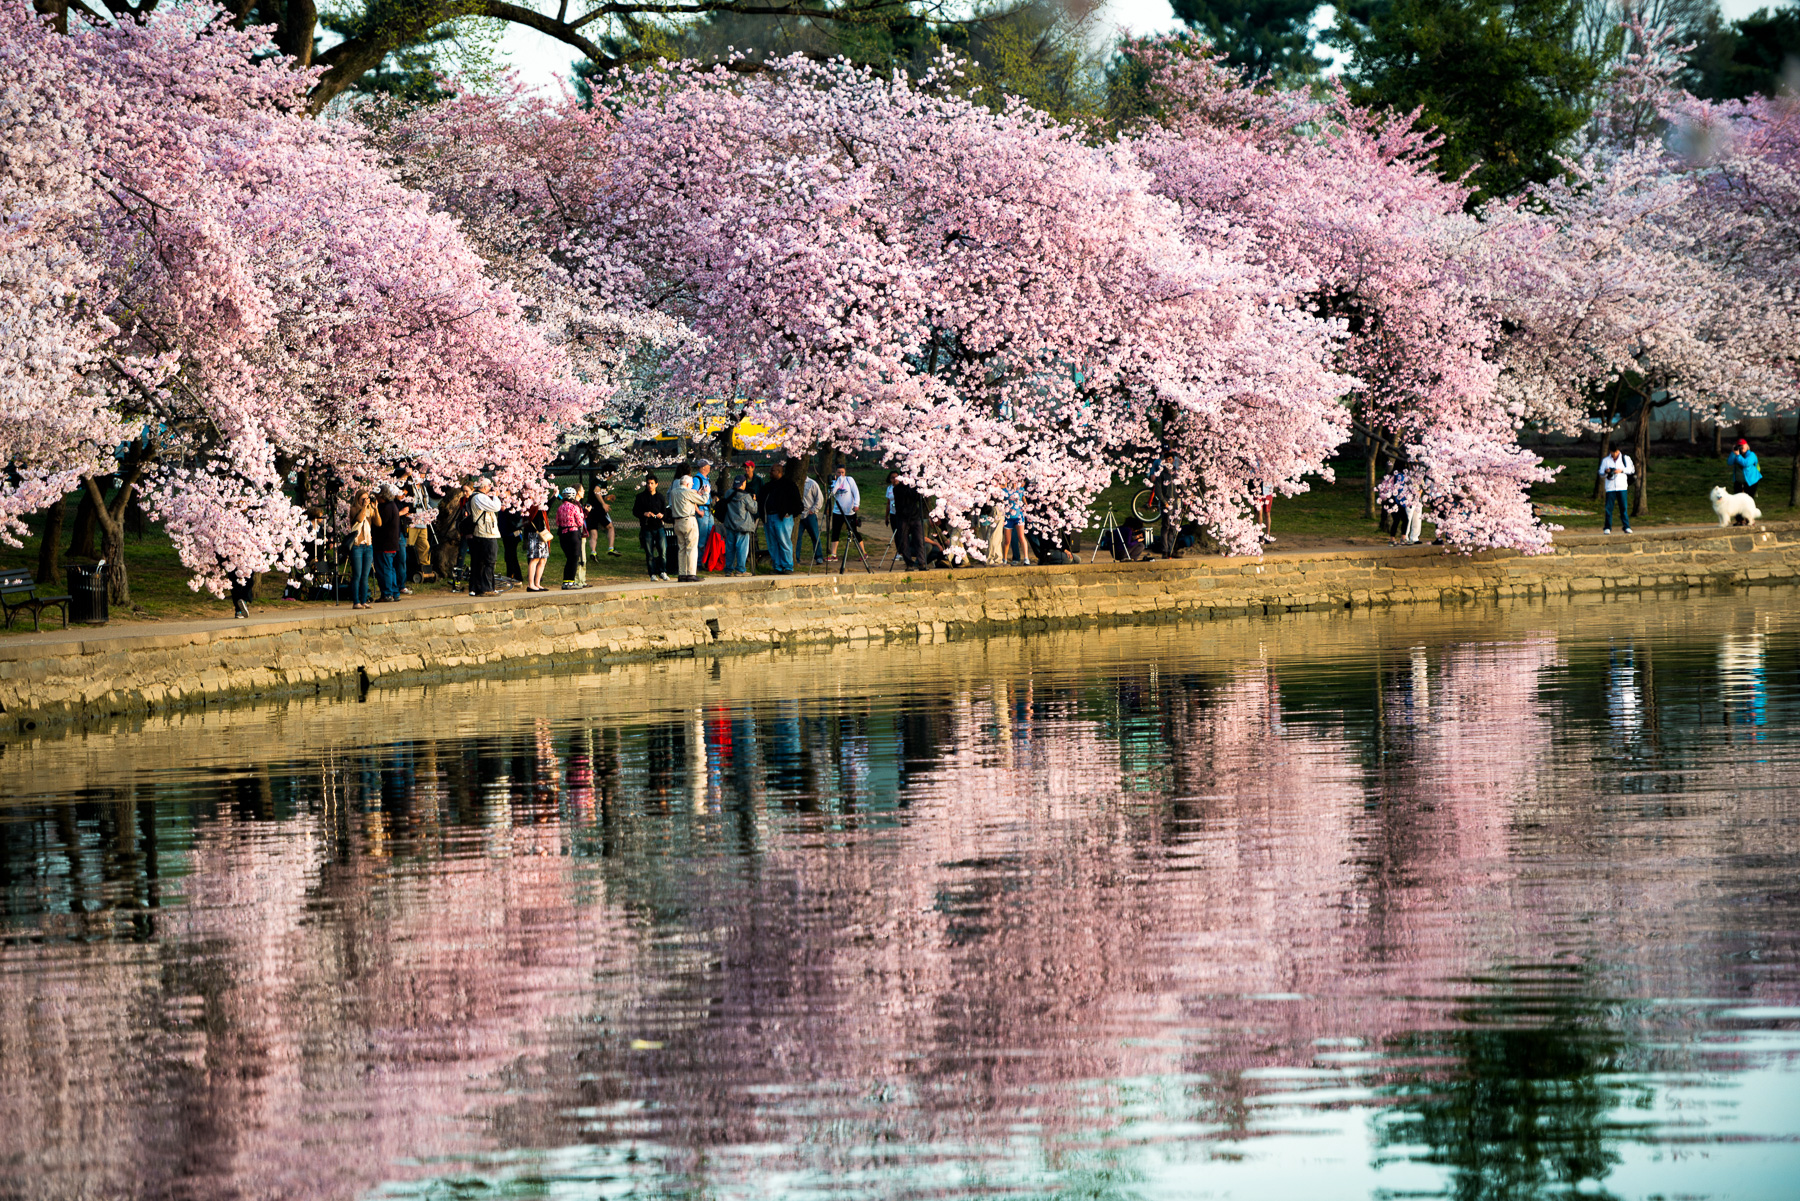 Washington Dc Flowering Cherry Trees - Flowers Healthy